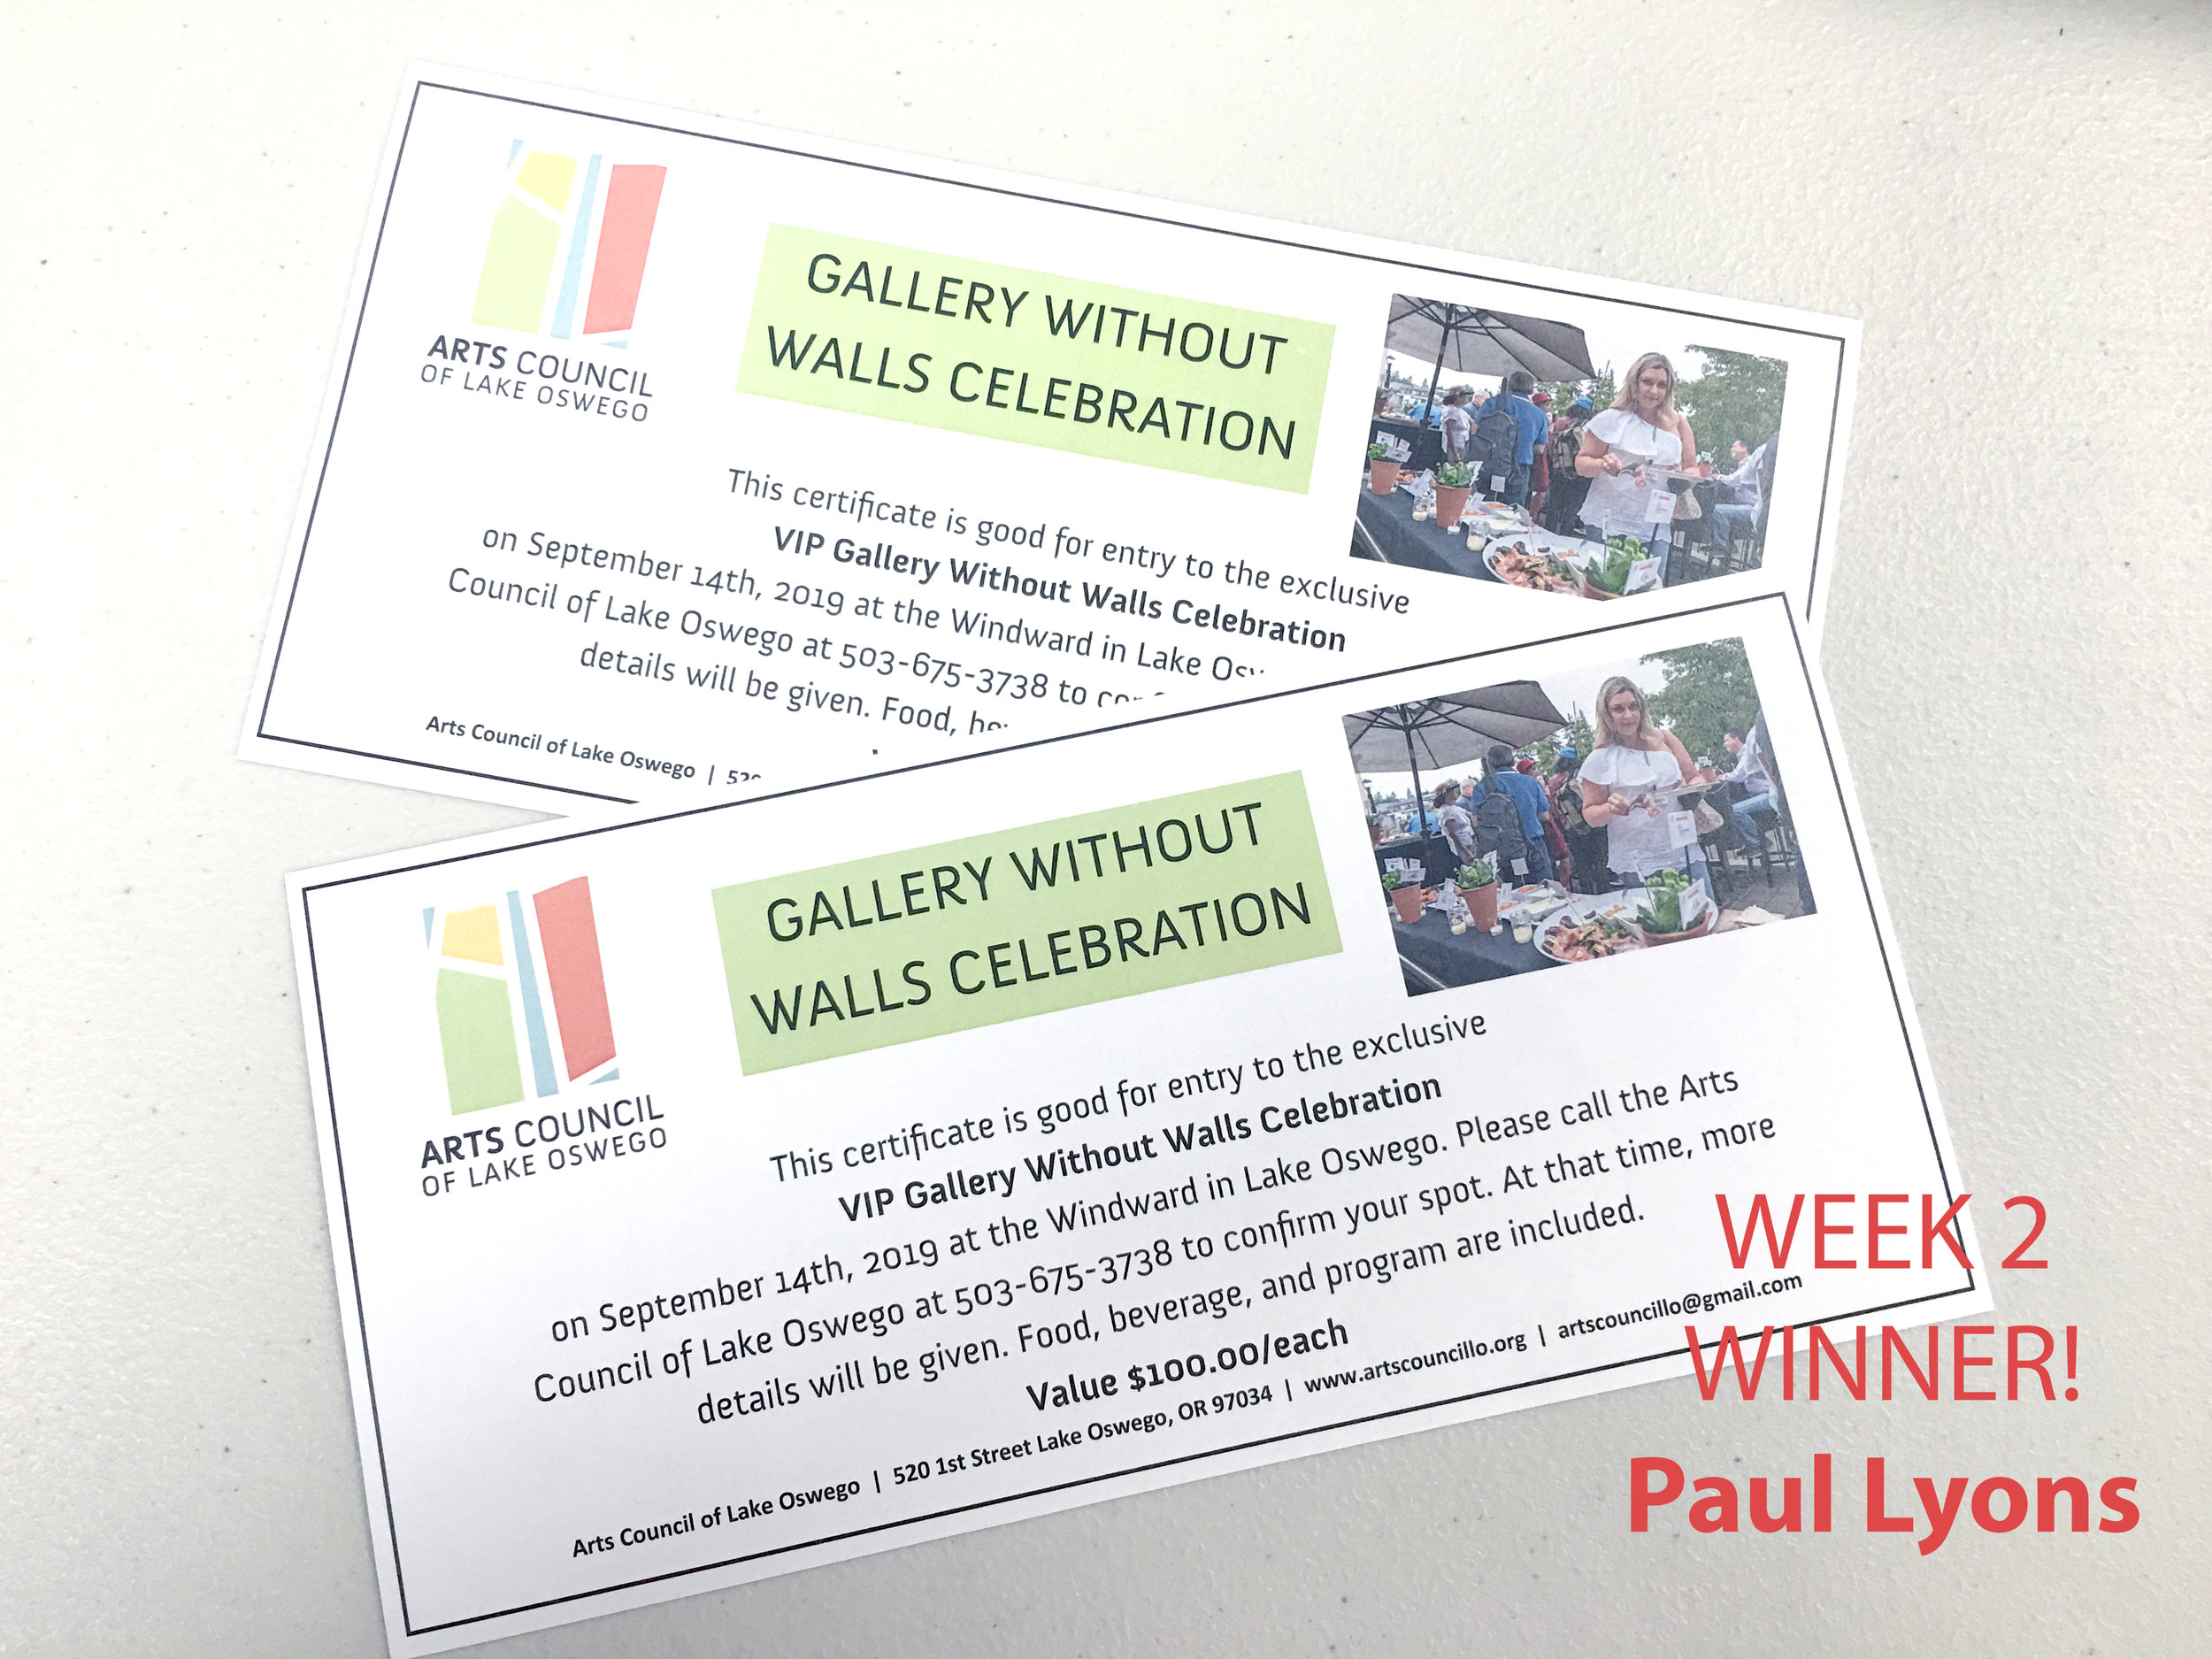 WEEK 2 - Tuesday, May 28 through Monday, June 4Participants will have the opportunity to win two tickets to Gallery Without Walls VIP Celebration! Value: $200.Winner will be announced Tuesday, June 4th.